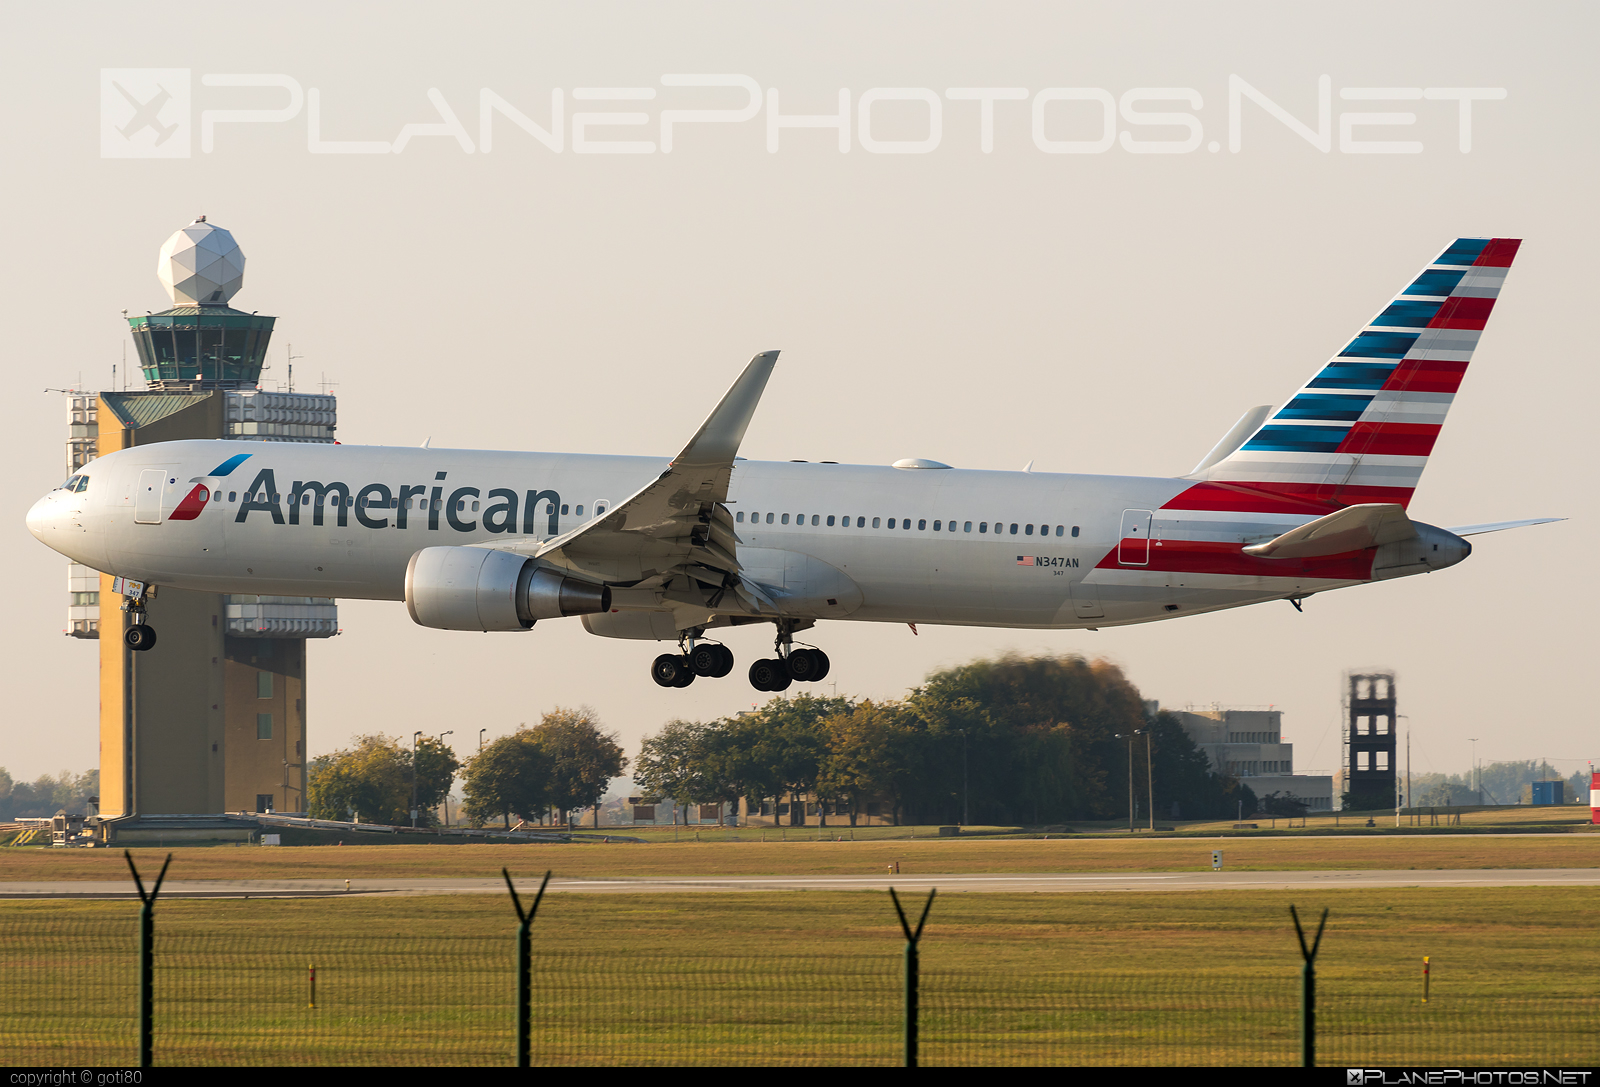 Boeing 767-300ER - N347AN operated by American Airlines #americanairlines #b767 #b767er #boeing #boeing767